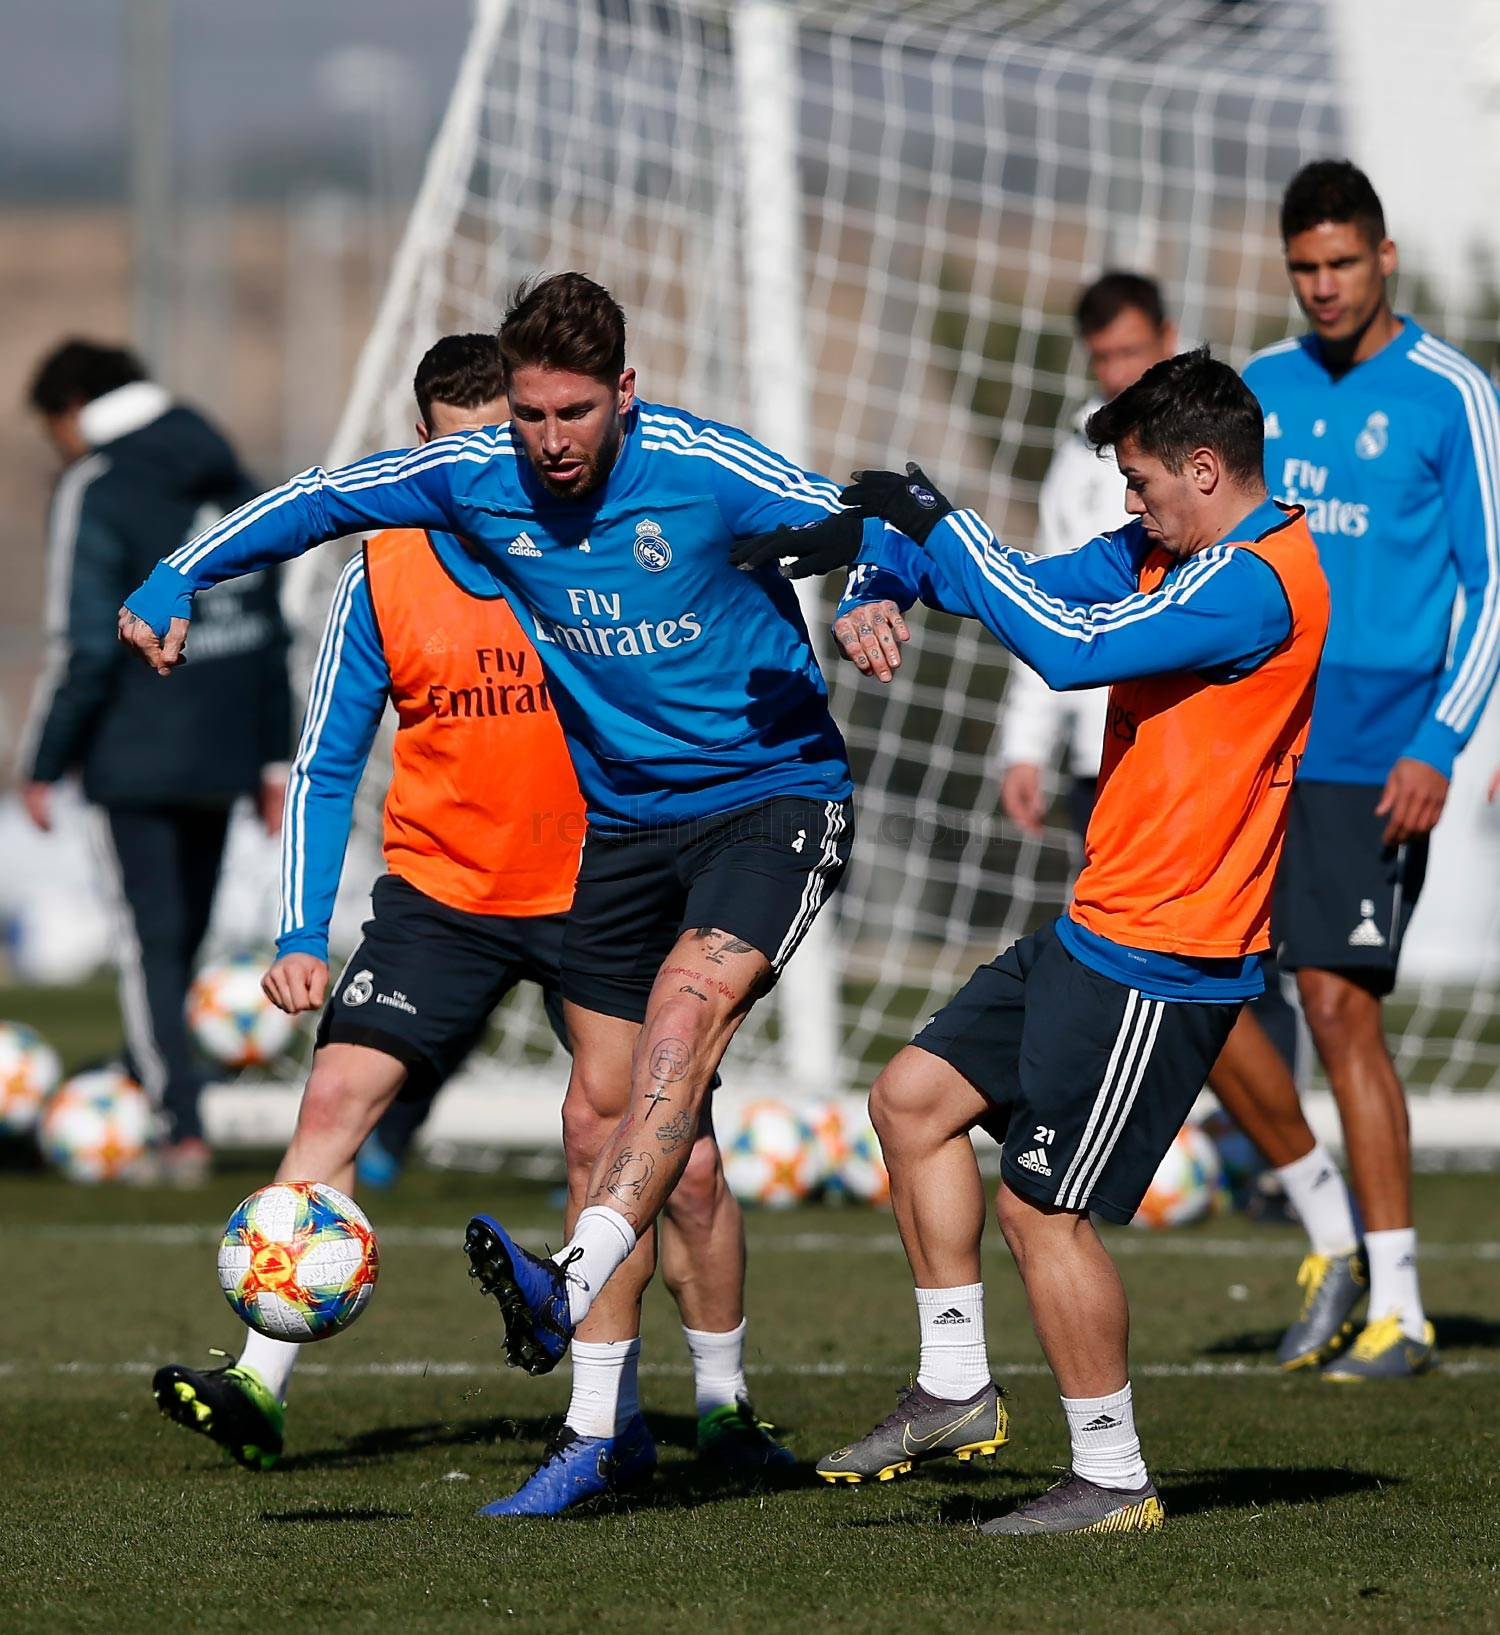 Real Madrid - Entrenamiento del Real Madrid - 05-02-2019